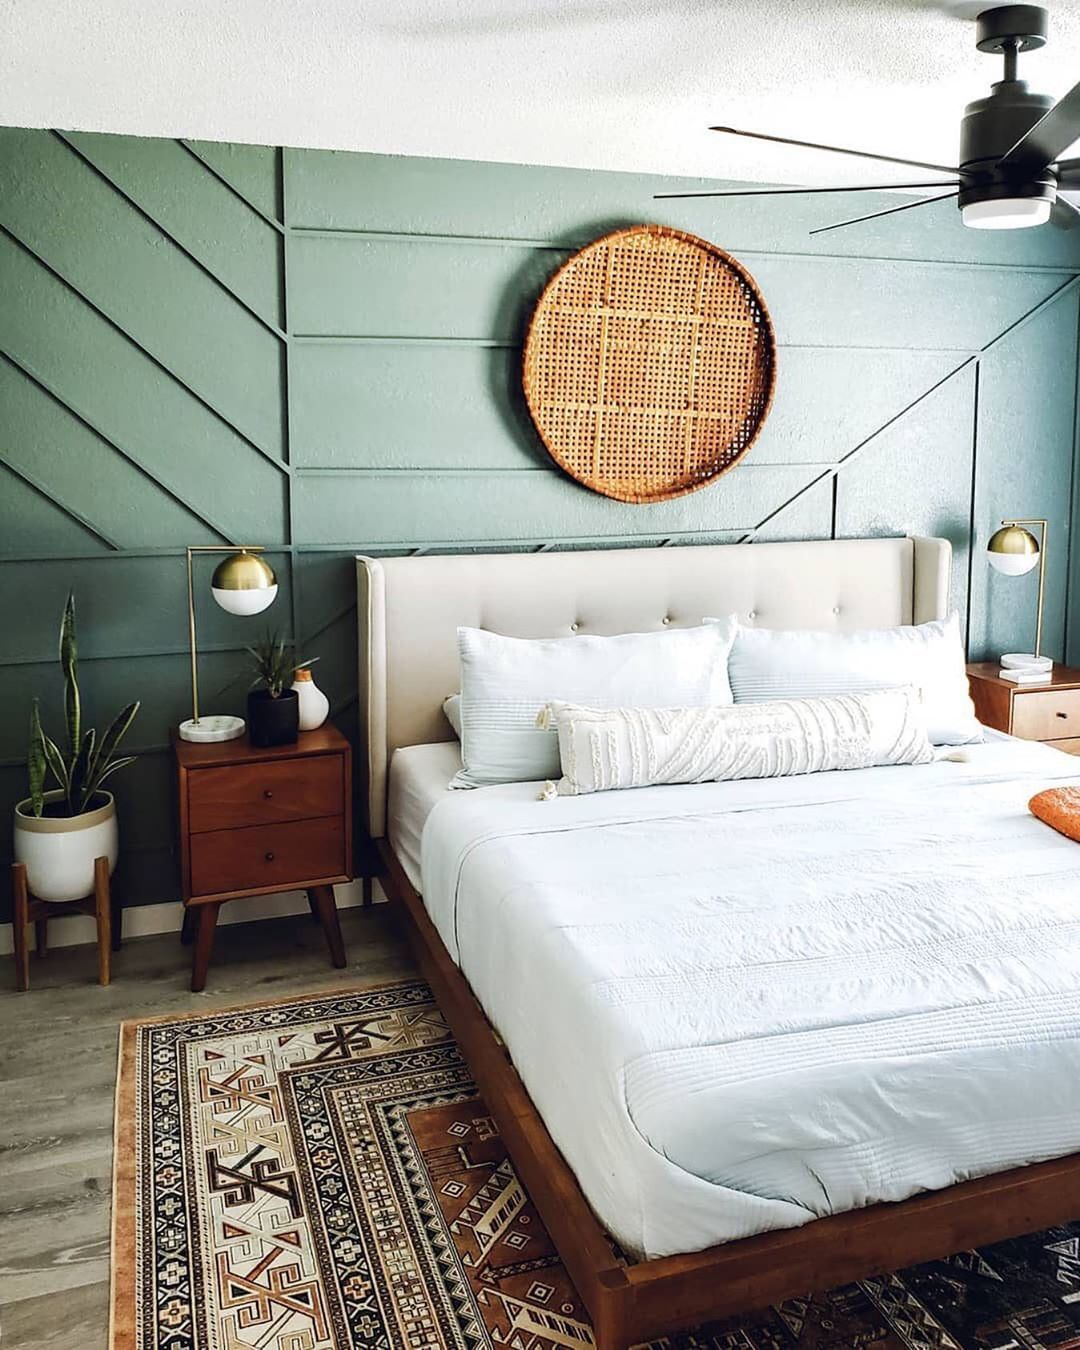 Boutique Hotel Bedrooms: When Your Bedroom Looks Like A Boutique Hotel Room 👌 Tap